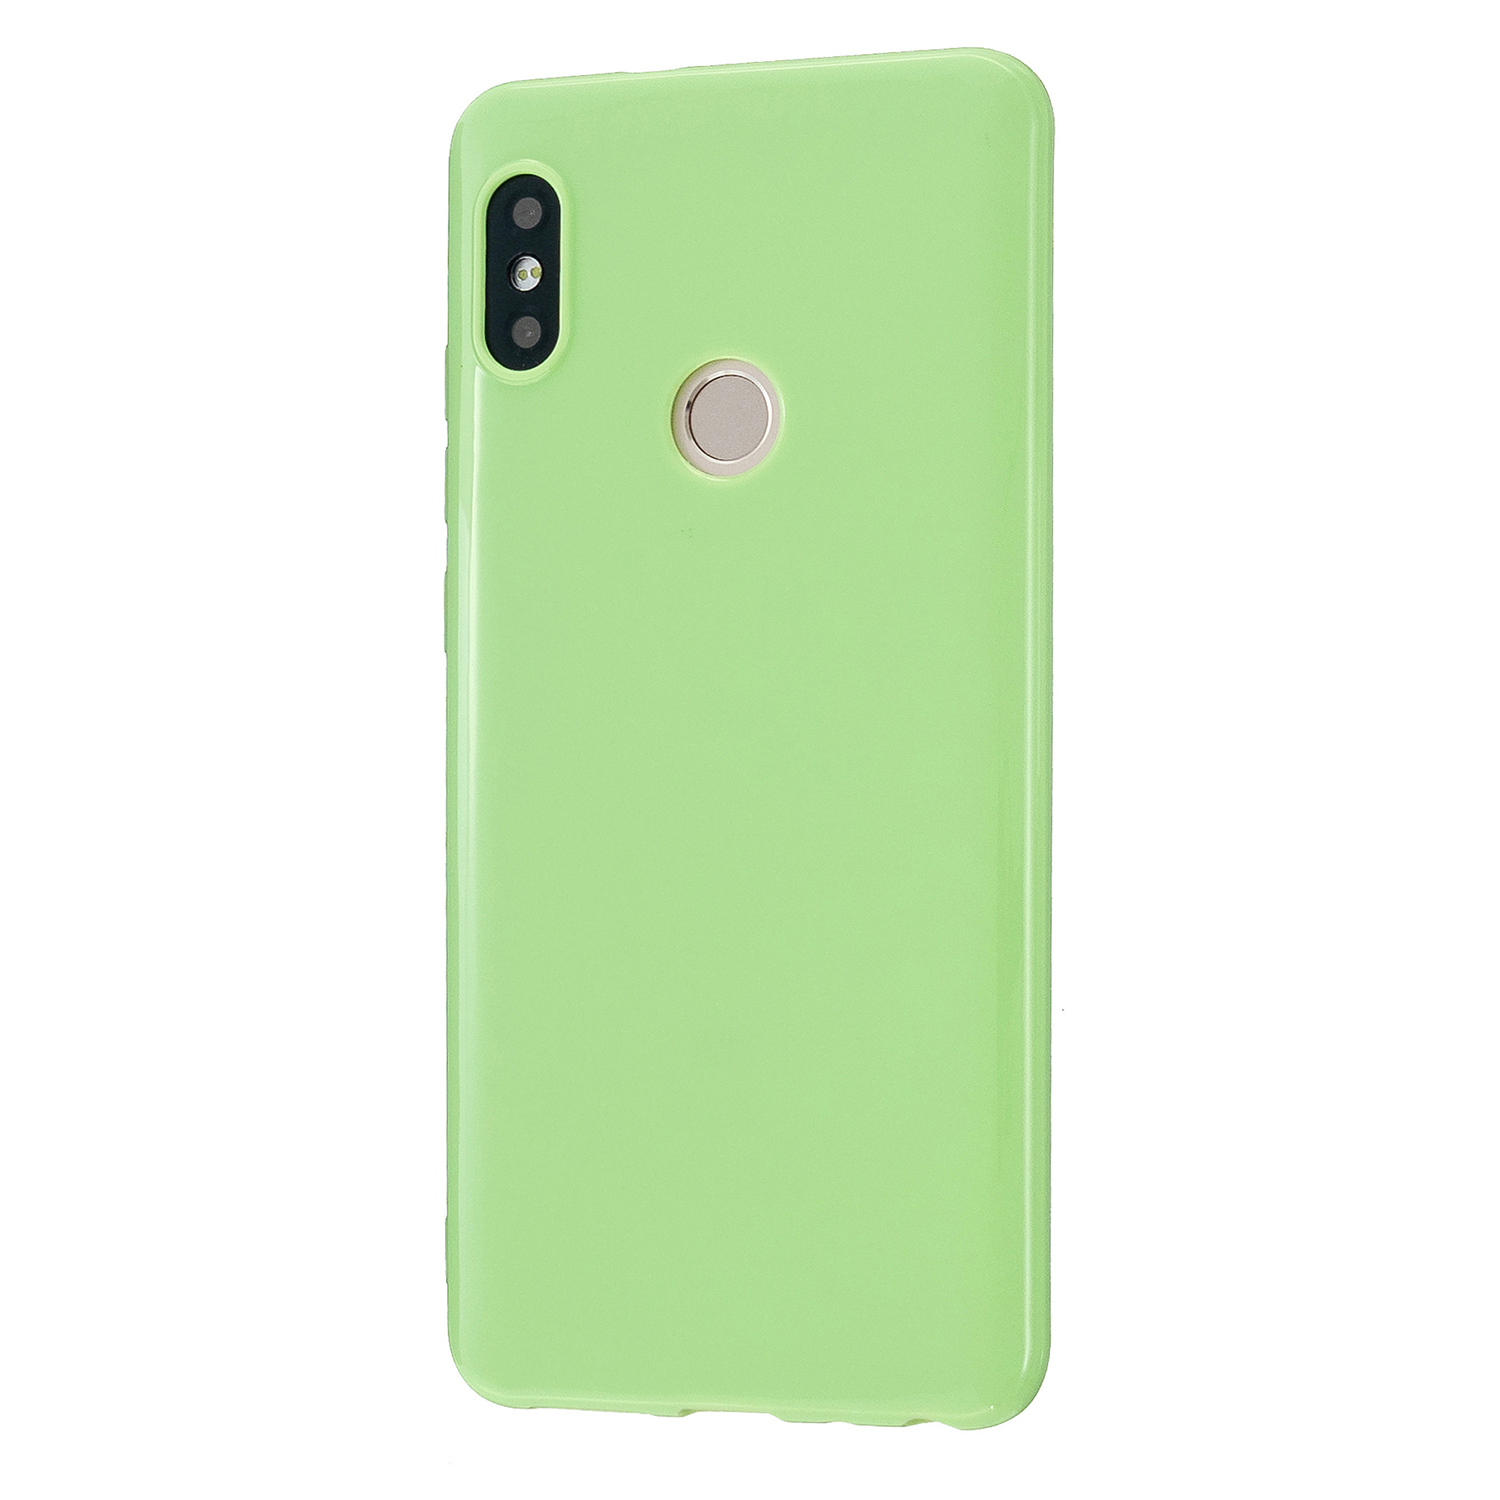 For Redmi GO/Note 5 Pro/Note 6 Pro Cellphone Cover Drop and Shock Proof Soft TPU Phone Case Classic Shell Fluorescent green